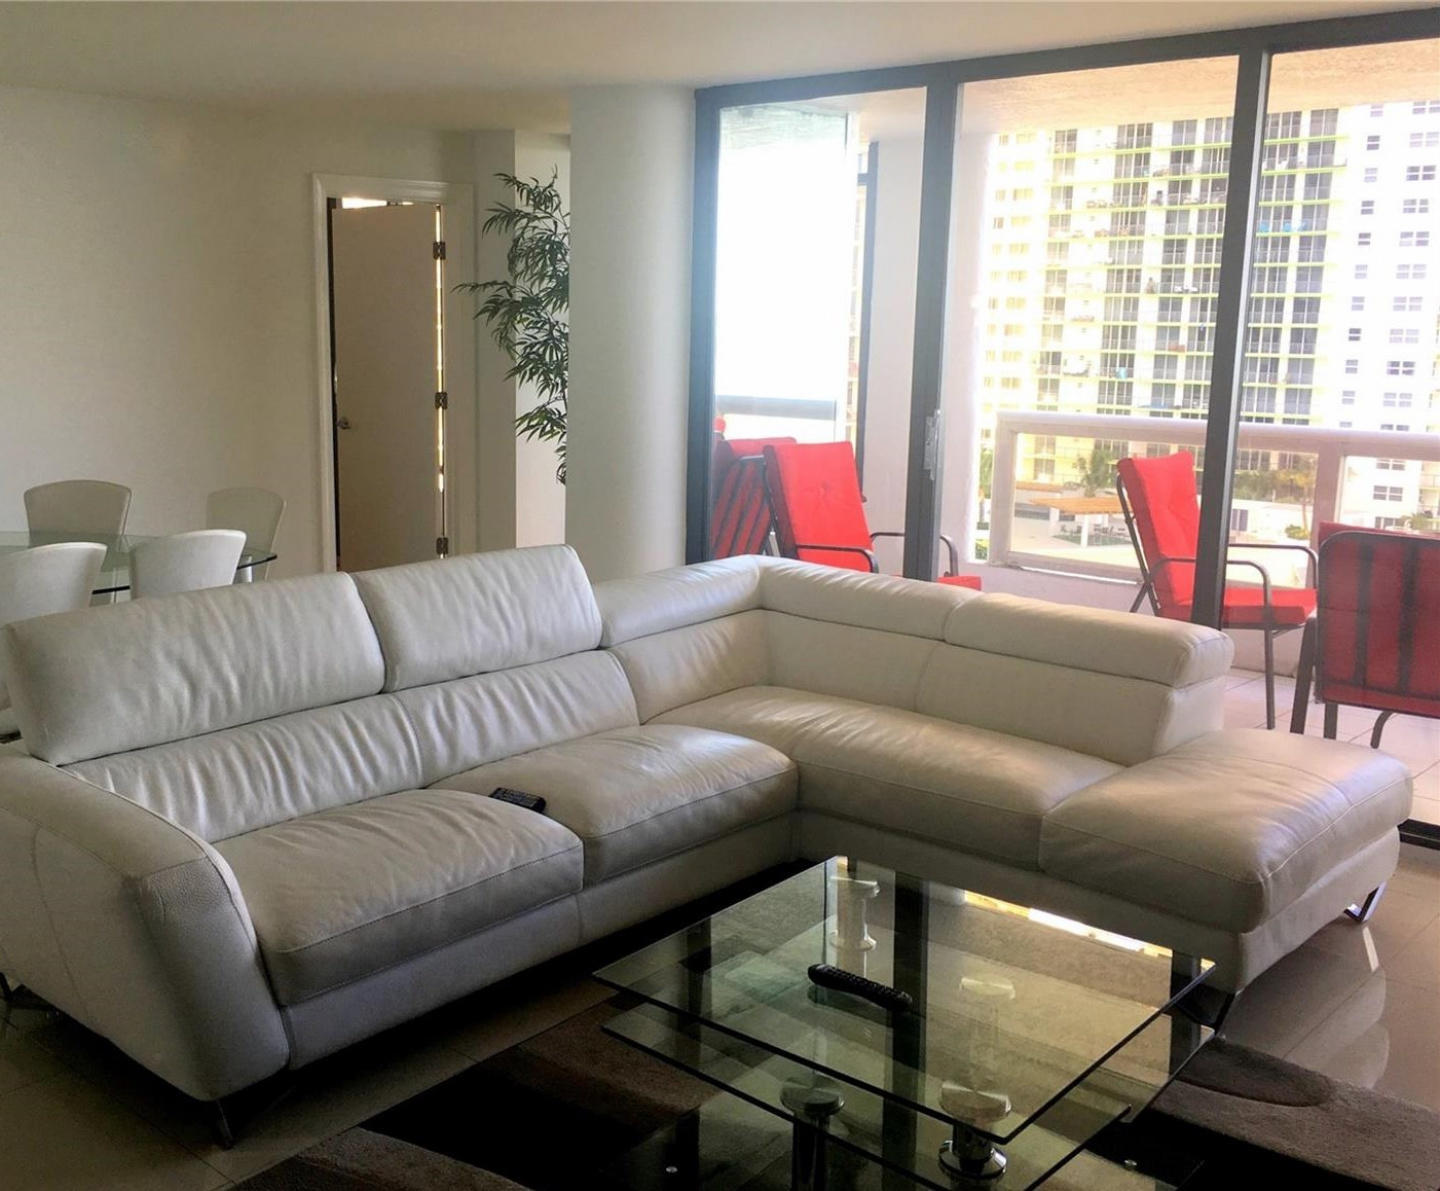 Spacious apartment in Miami with Lift, Parking,... Slide-1